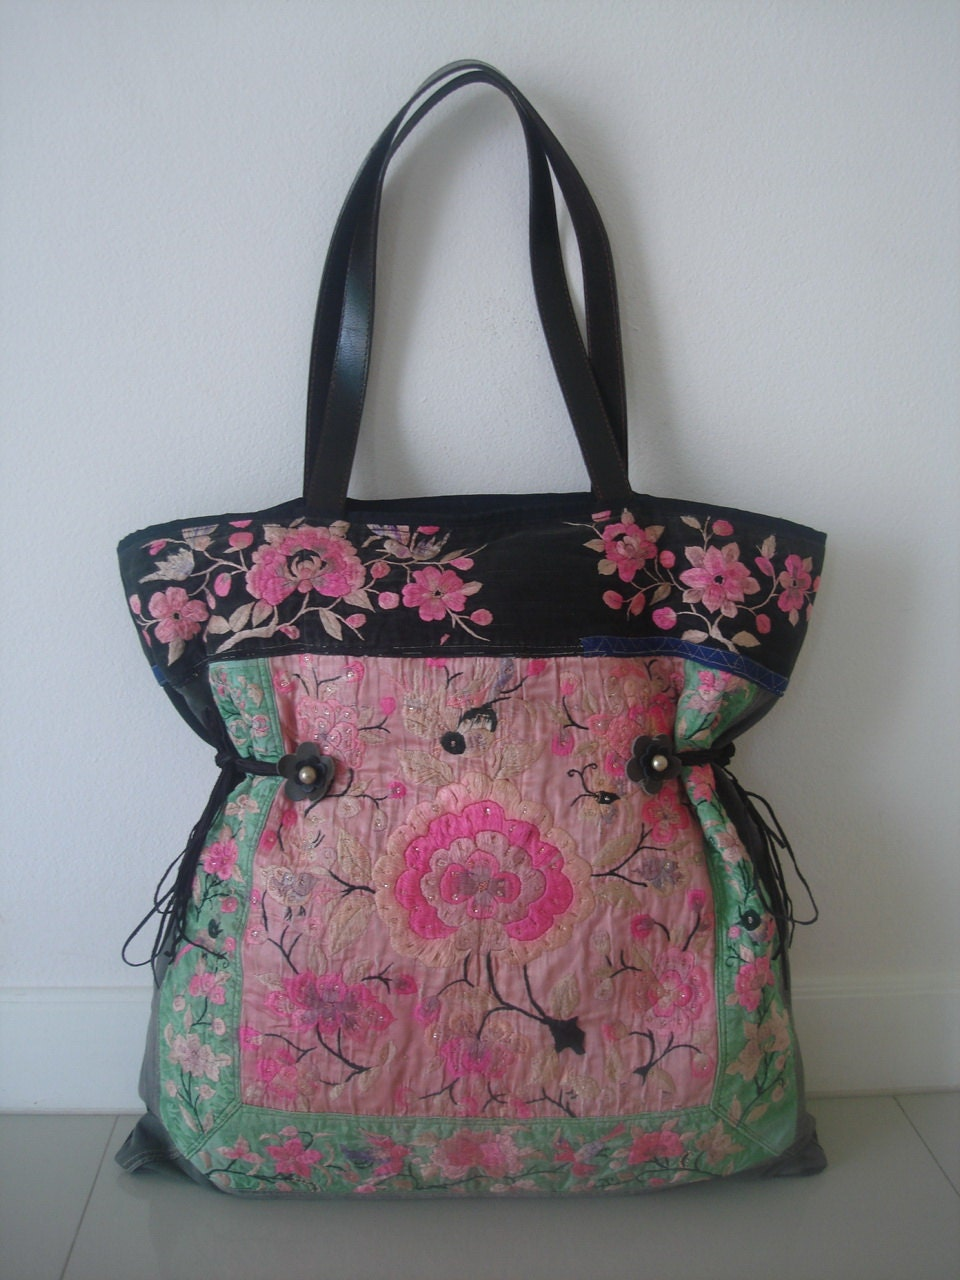 Oversized Tote/vintage -Handmade Ethnic Hmong Bag HB-280